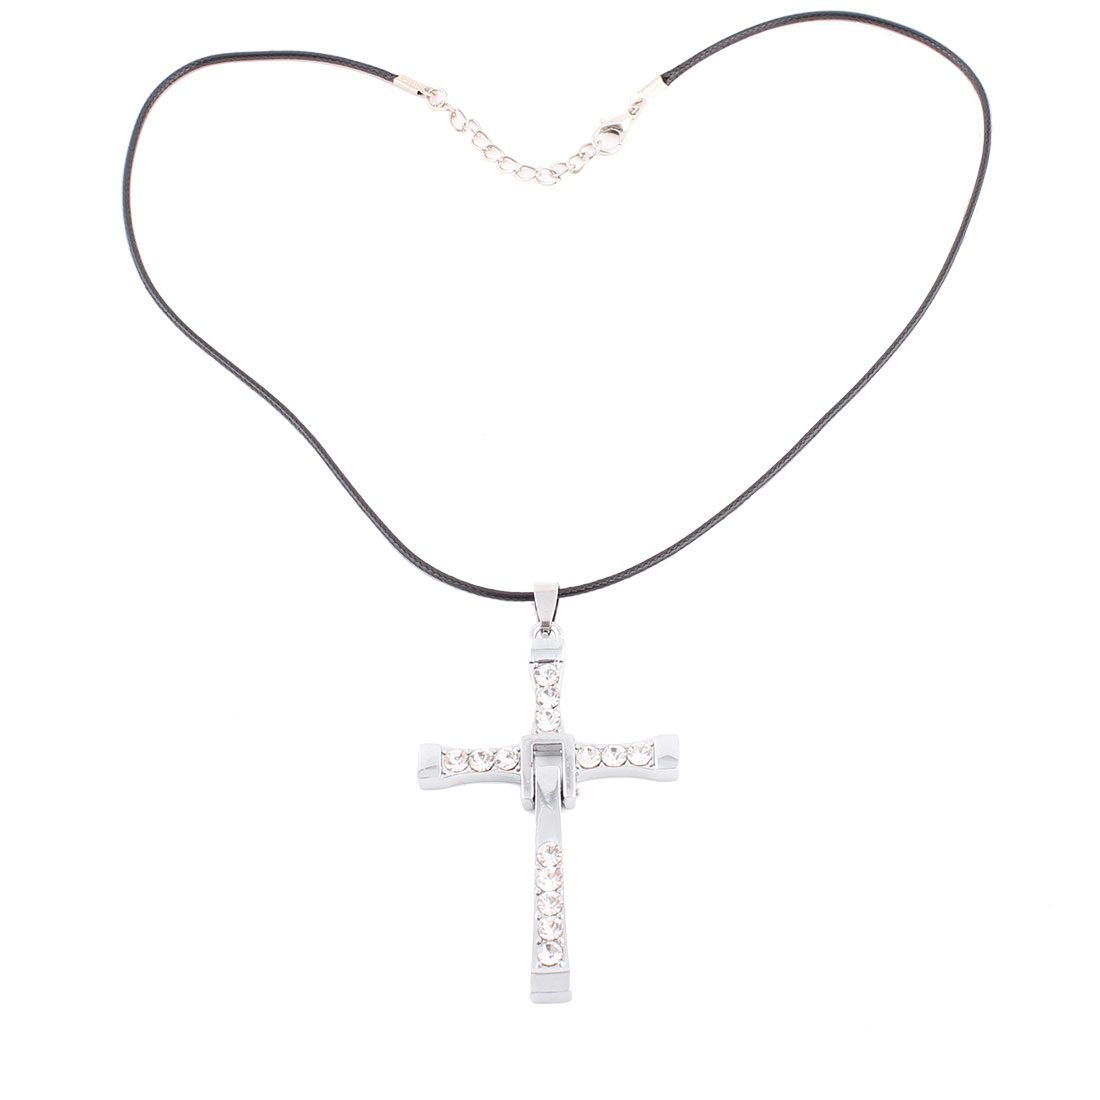 Unisex Metal Pendant Braided Nylon String Cross Shaped Necklace Black Silver Tone